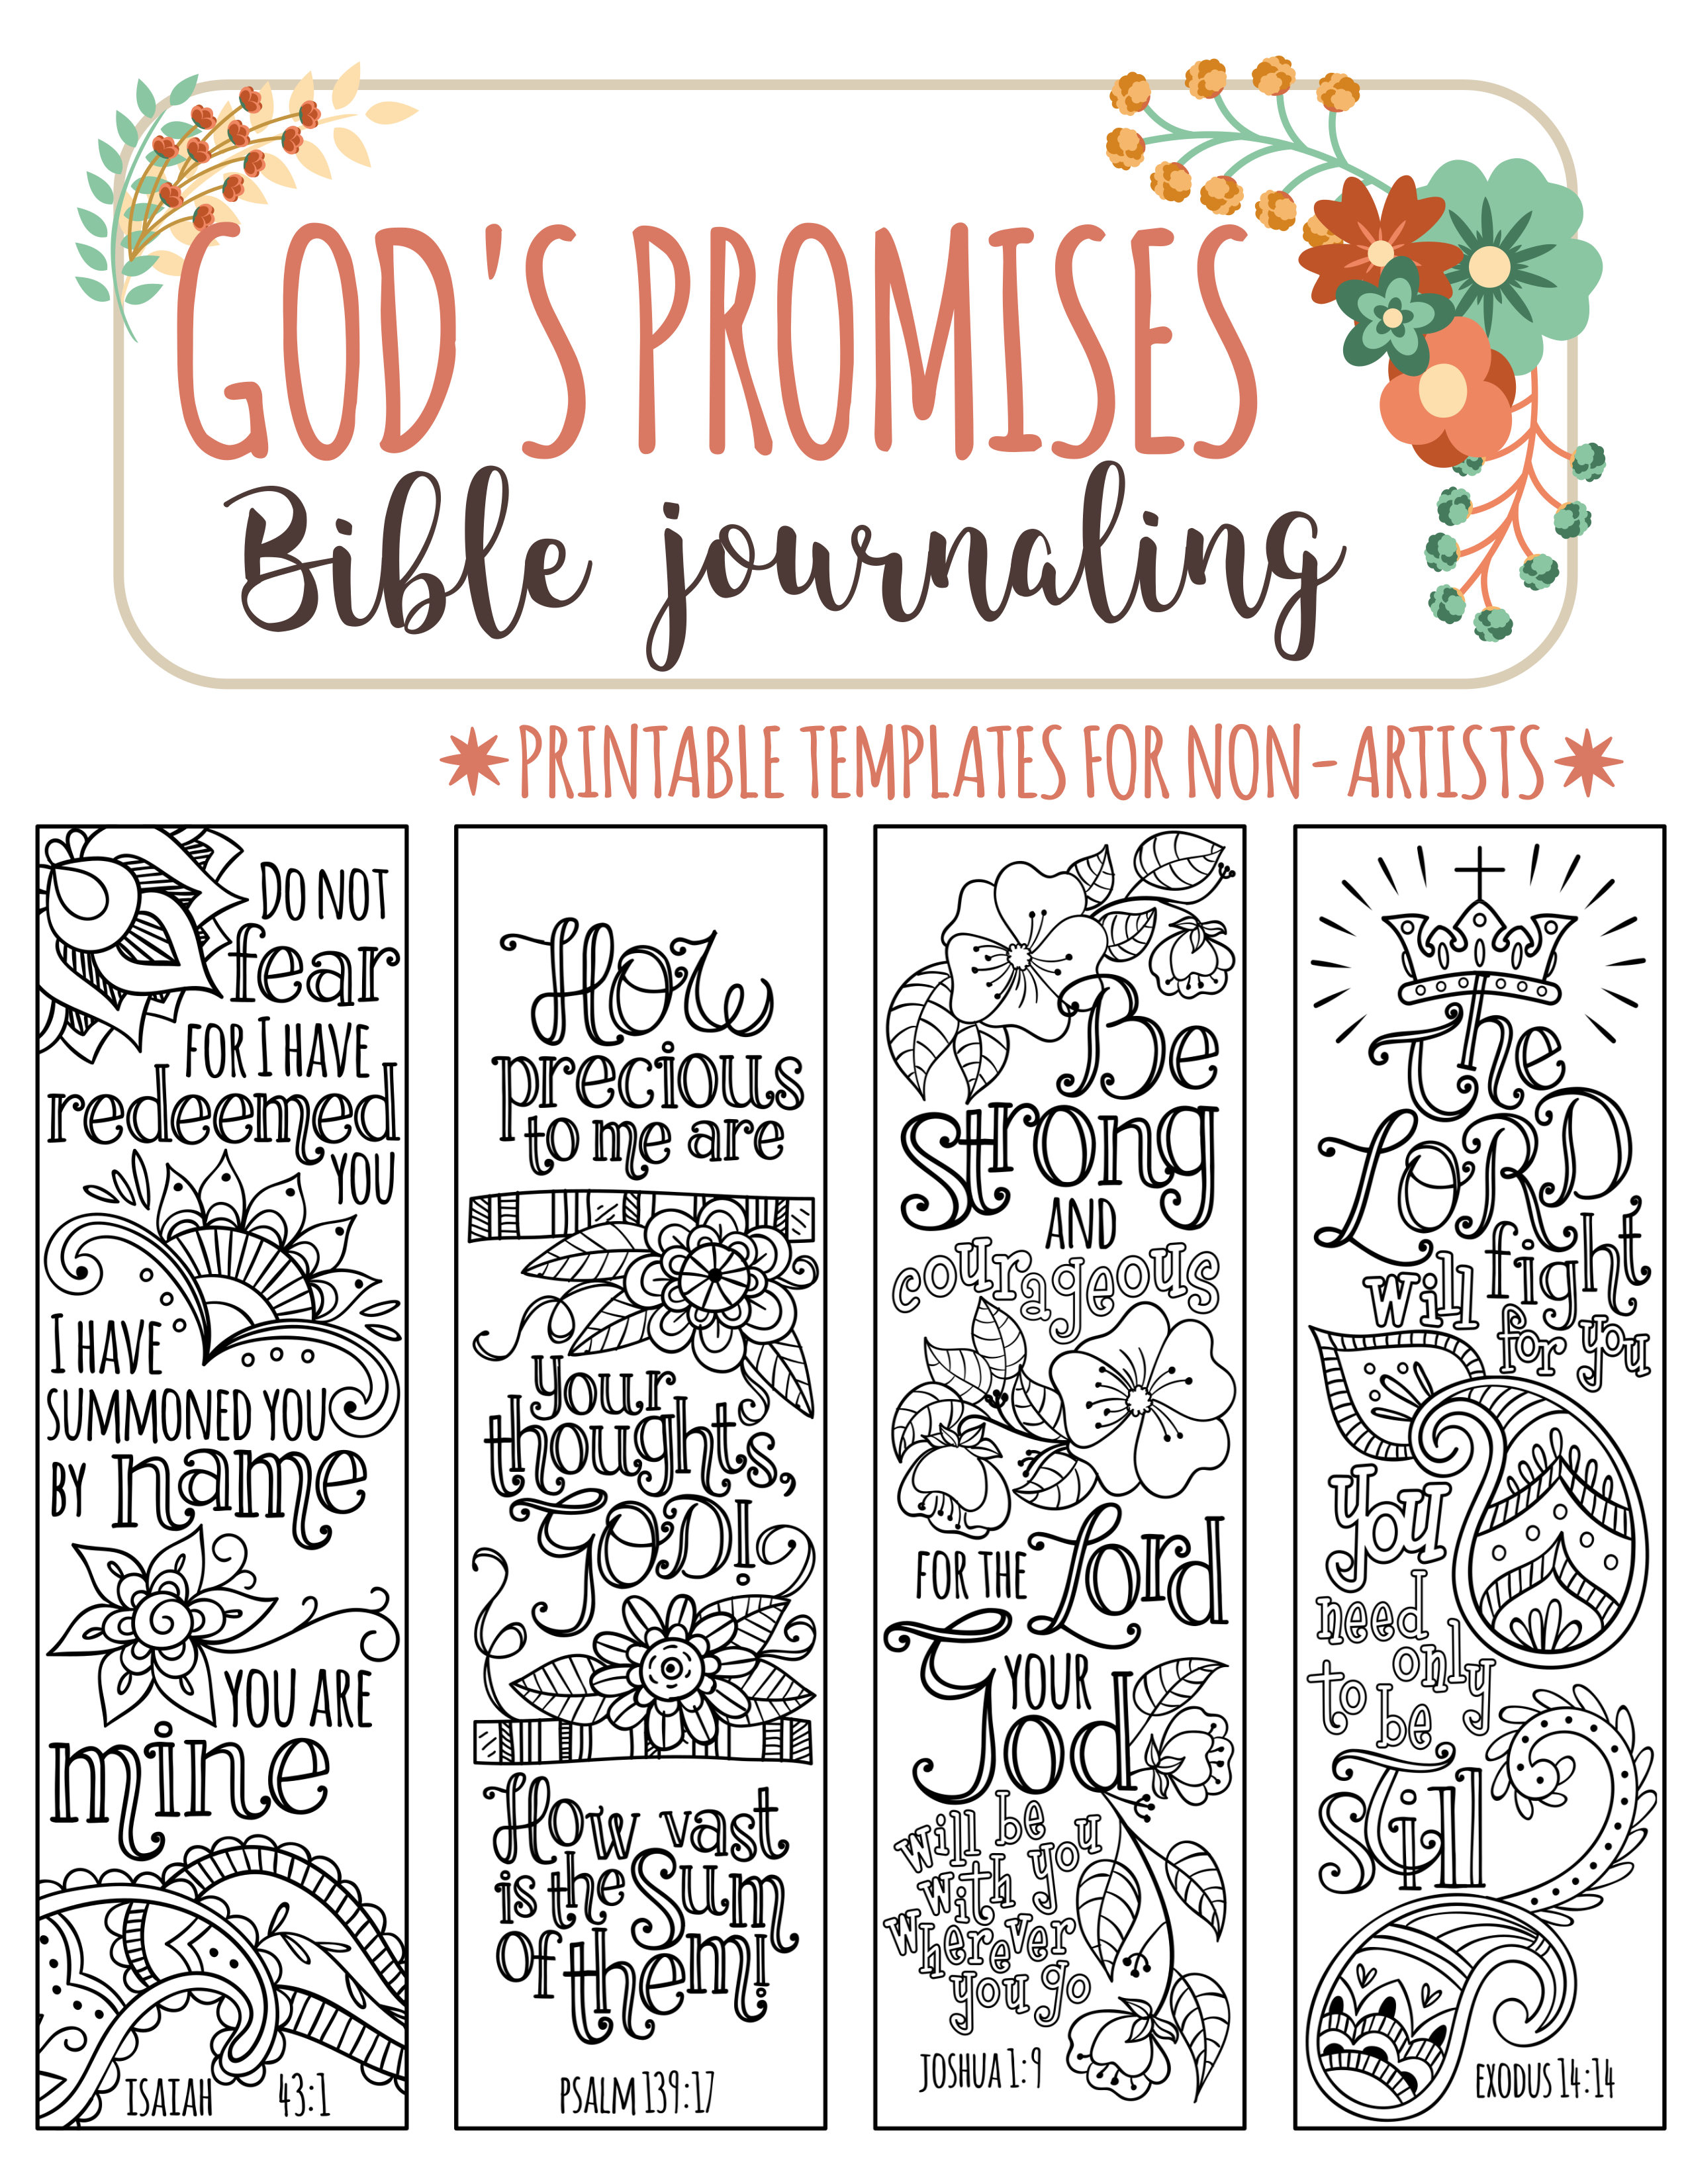 picture regarding Free Printable Christian Bookmarks called Free of charge Printable Christian Bookmarks Templates Exceptional Design and style